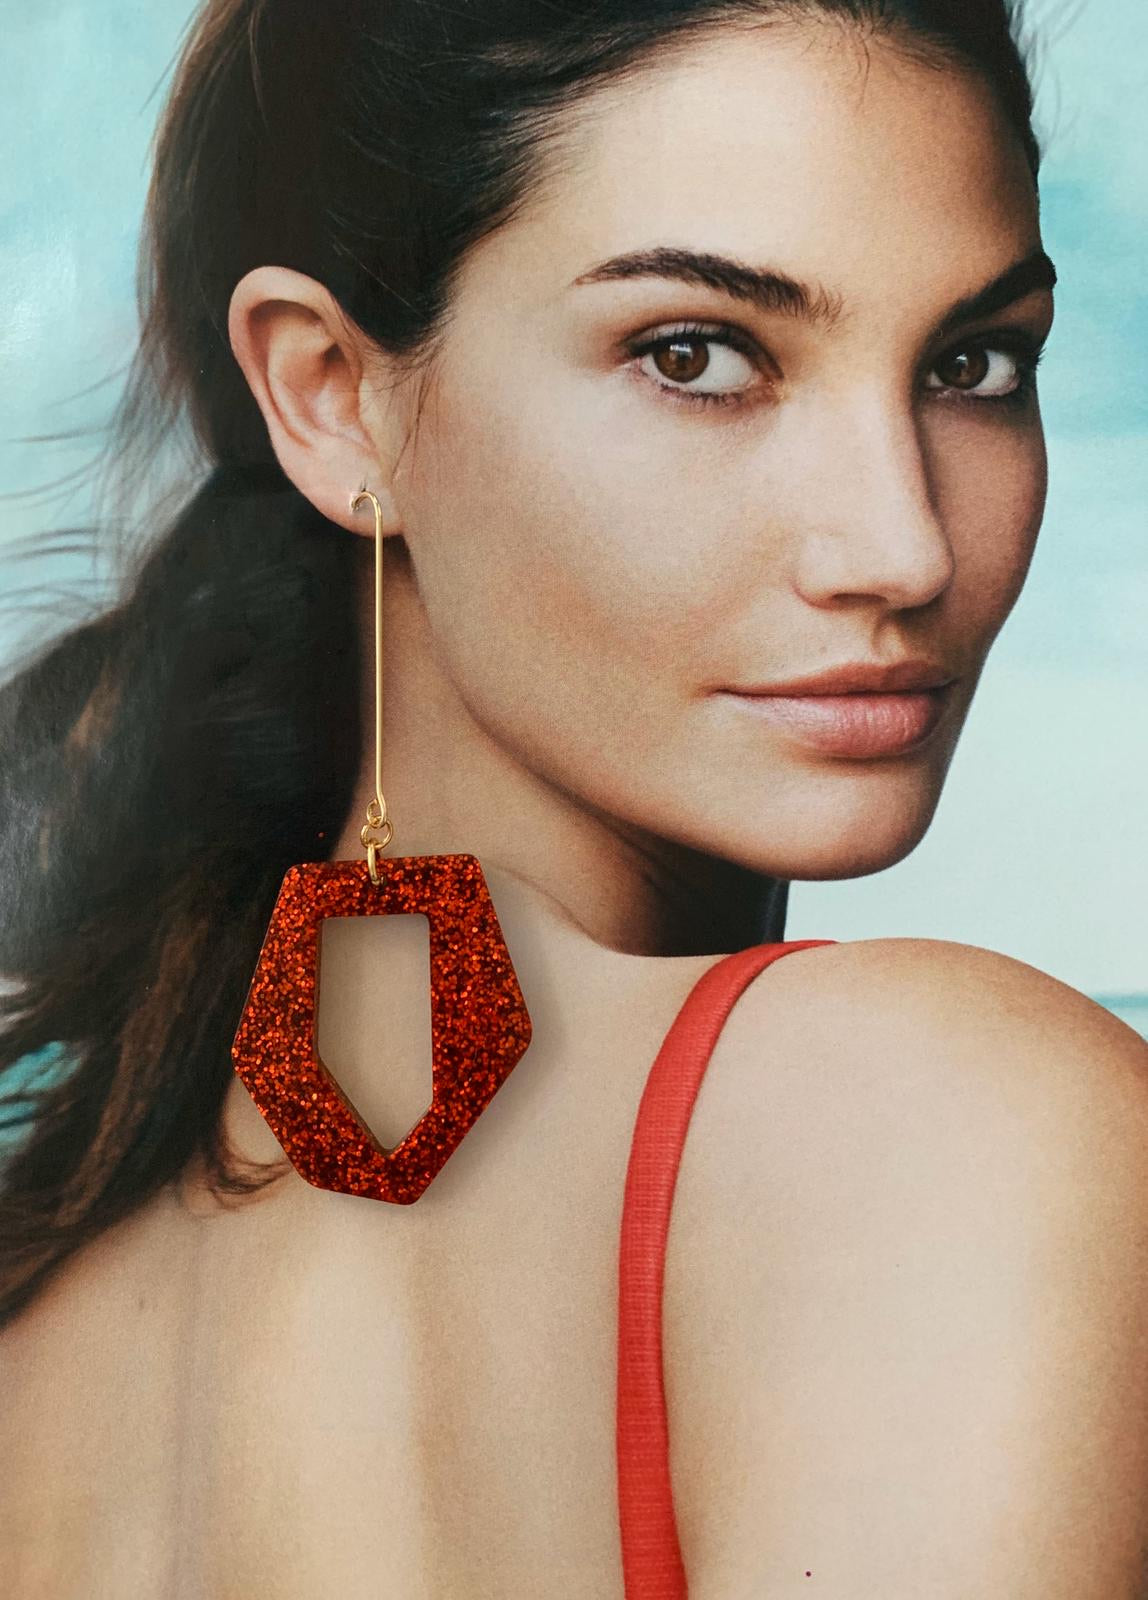 Resina red earrings